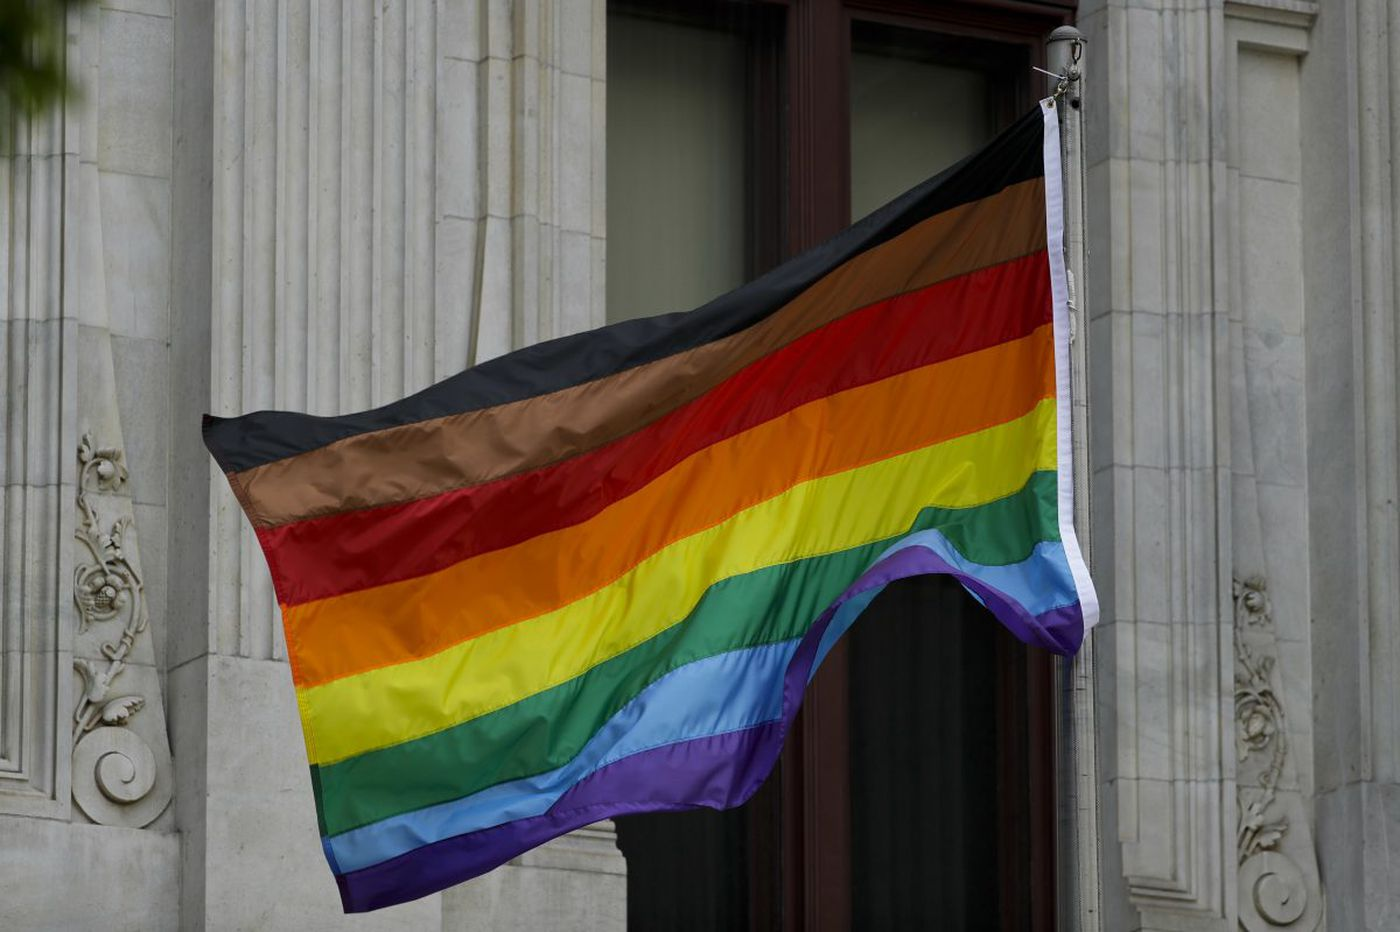 Who gets to decide what belongs on the gay pride flag?